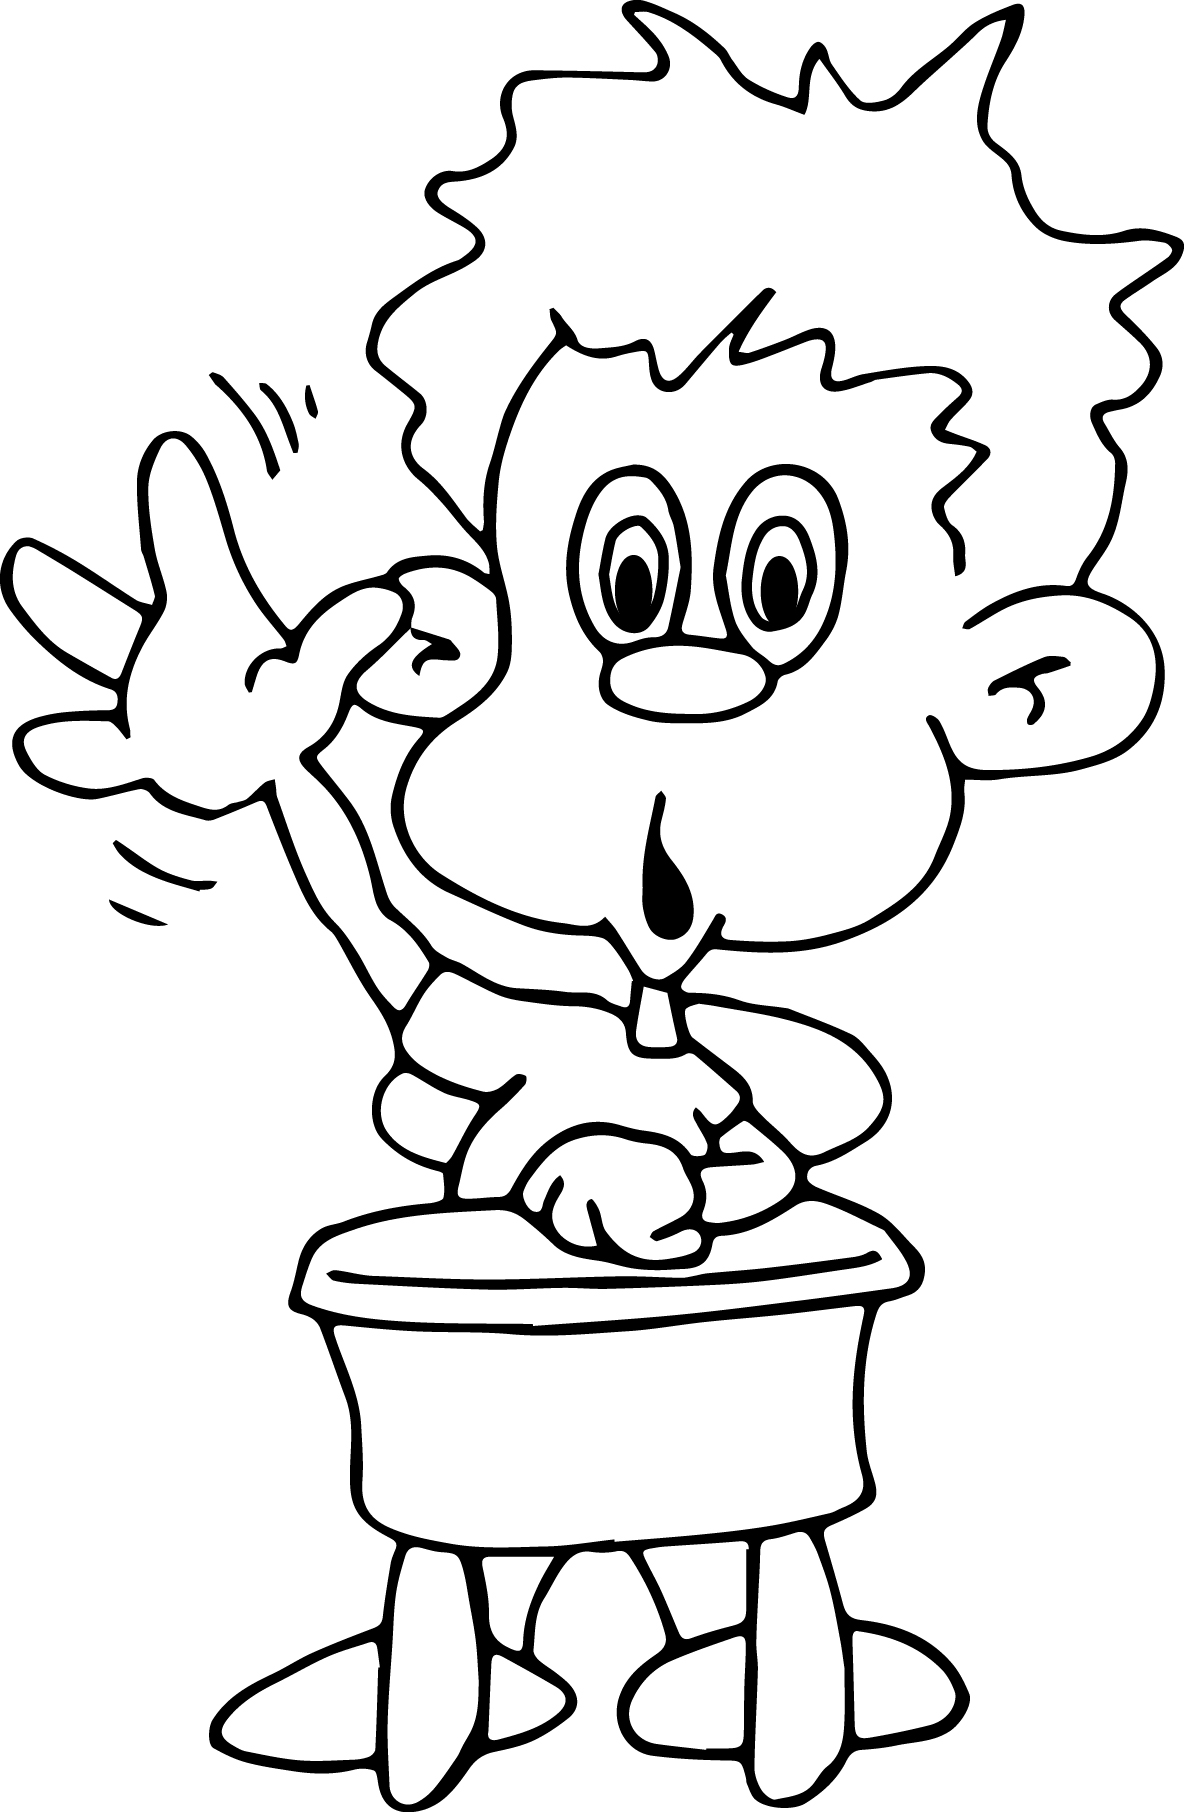 Children At The School Up Hand Coloring Page Wecoloringpage